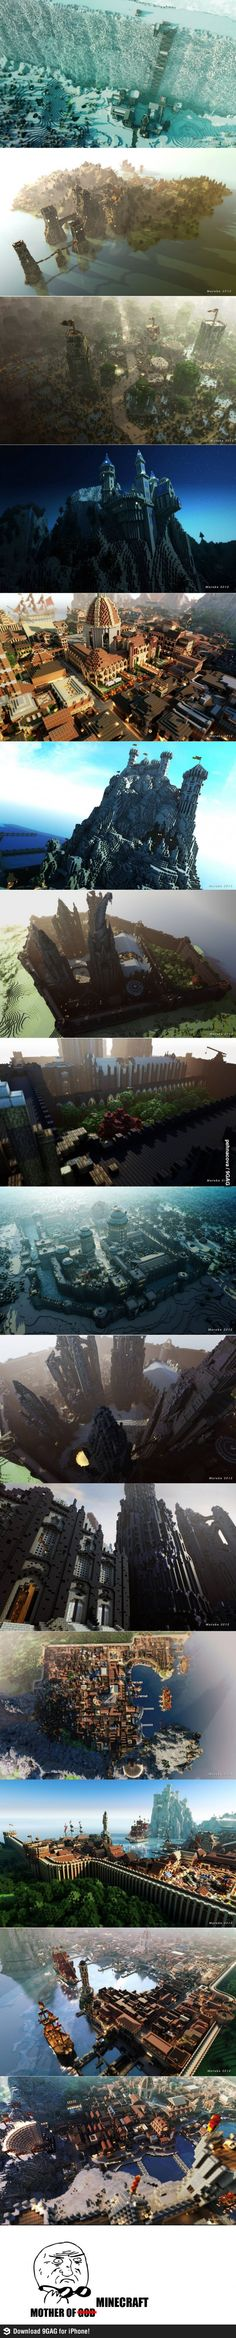 Gosh it's insane what people can build in Minecraft, take this pin as an example, like come on!! These builds are AWESOME!!!!!